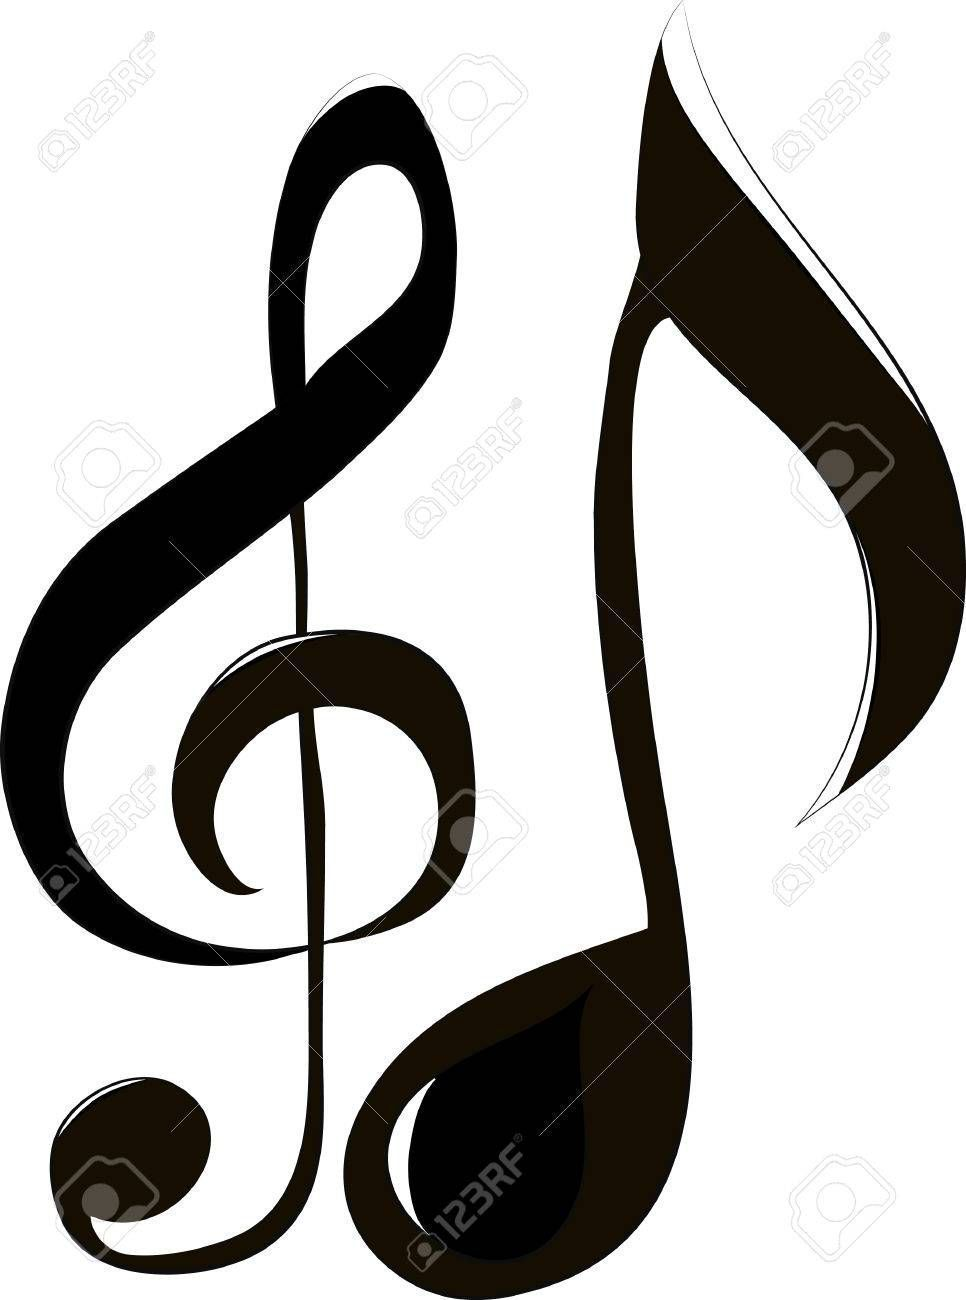 treble clef and note , #Ad, #treble, #clef, #note #trebleclef treble clef and note , #Ad, #treble, #clef, #note #trebleclef treble clef and note , #Ad, #treble, #clef, #note #trebleclef treble clef and note , #Ad, #treble, #clef, #note #trebleclef treble clef and note , #Ad, #treble, #clef, #note #trebleclef treble clef and note , #Ad, #treble, #clef, #note #trebleclef treble clef and note , #Ad, #treble, #clef, #note #trebleclef treble clef and note , #Ad, #treble, #clef, #note #trebleclef